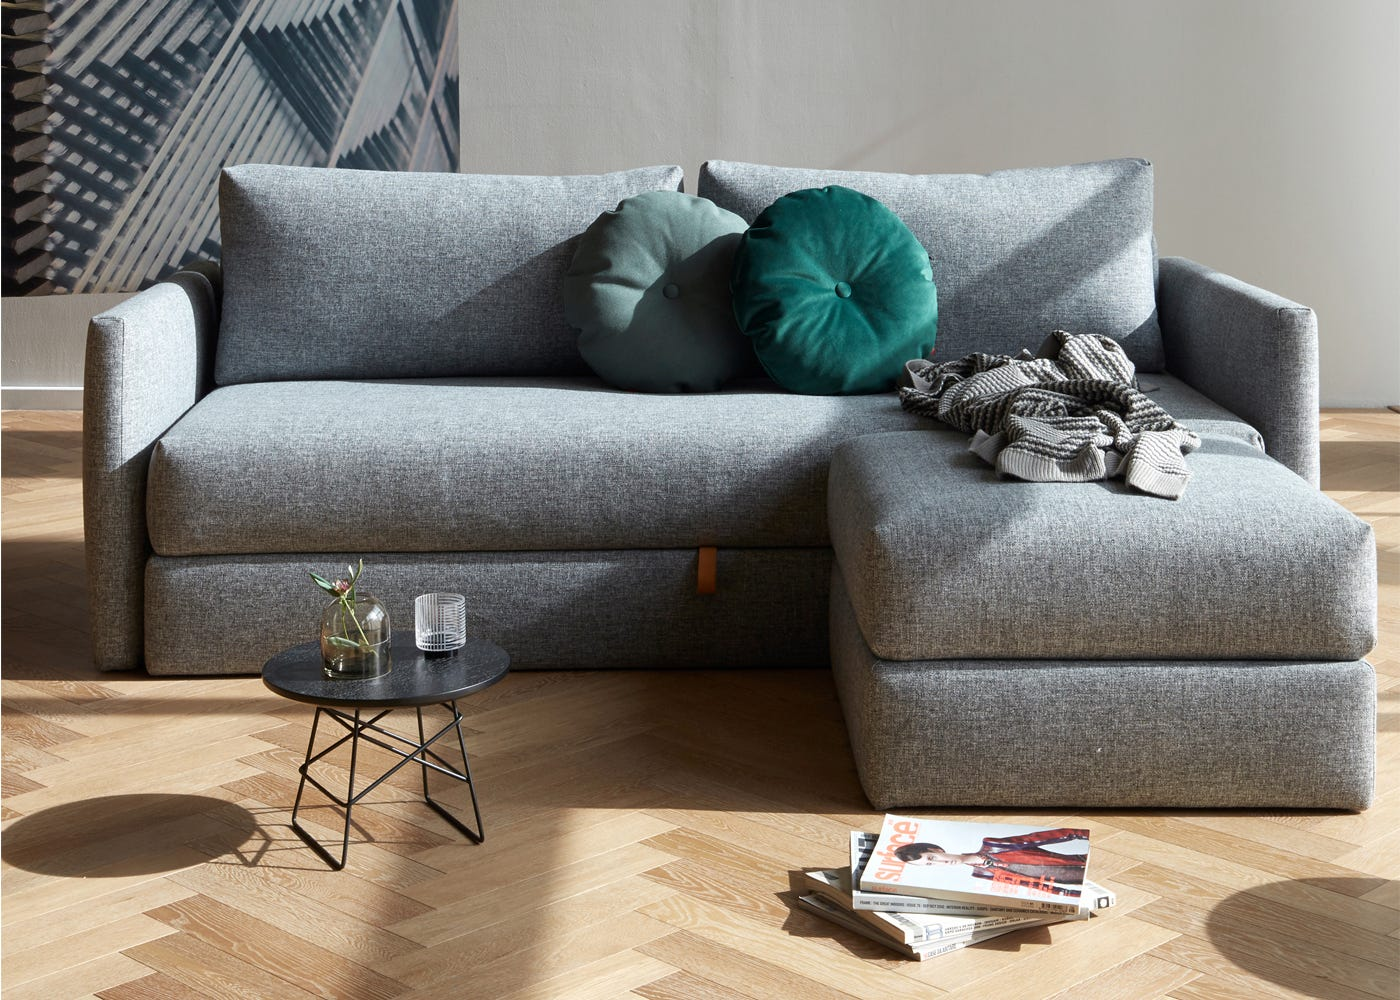 Oswald Sofa Bed (in Dessin Twist). Here you can see how the foostool can make the sofabed into a corner chaise.